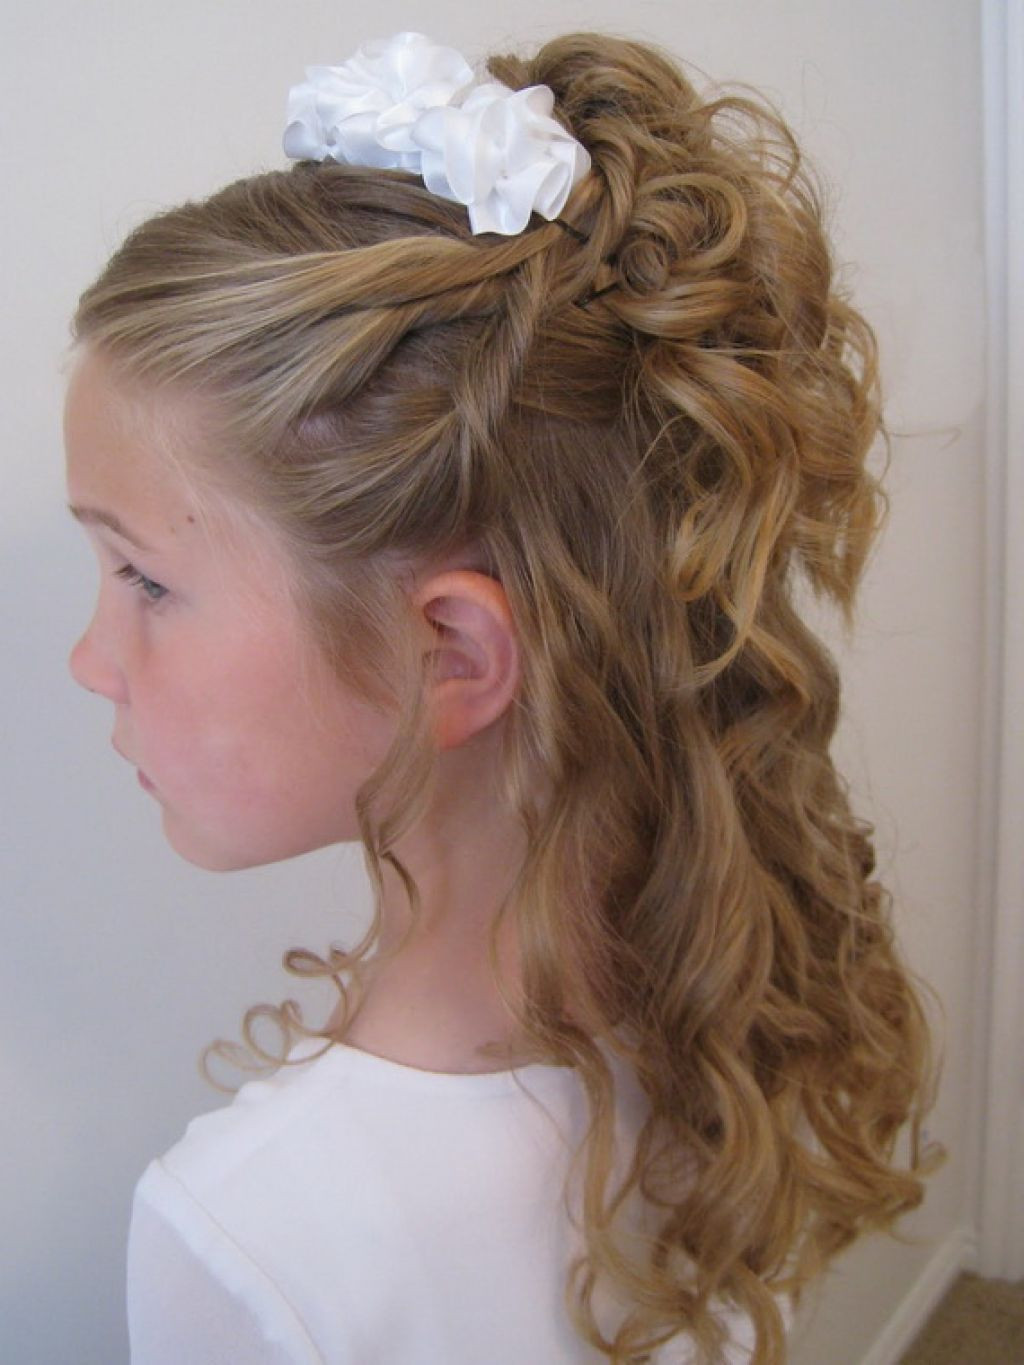 Best ideas about Wedding Hairstyles For Toddlers . Save or Pin 20 Wedding Hairstyles For Kids Ideas Wohh Wedding Now.